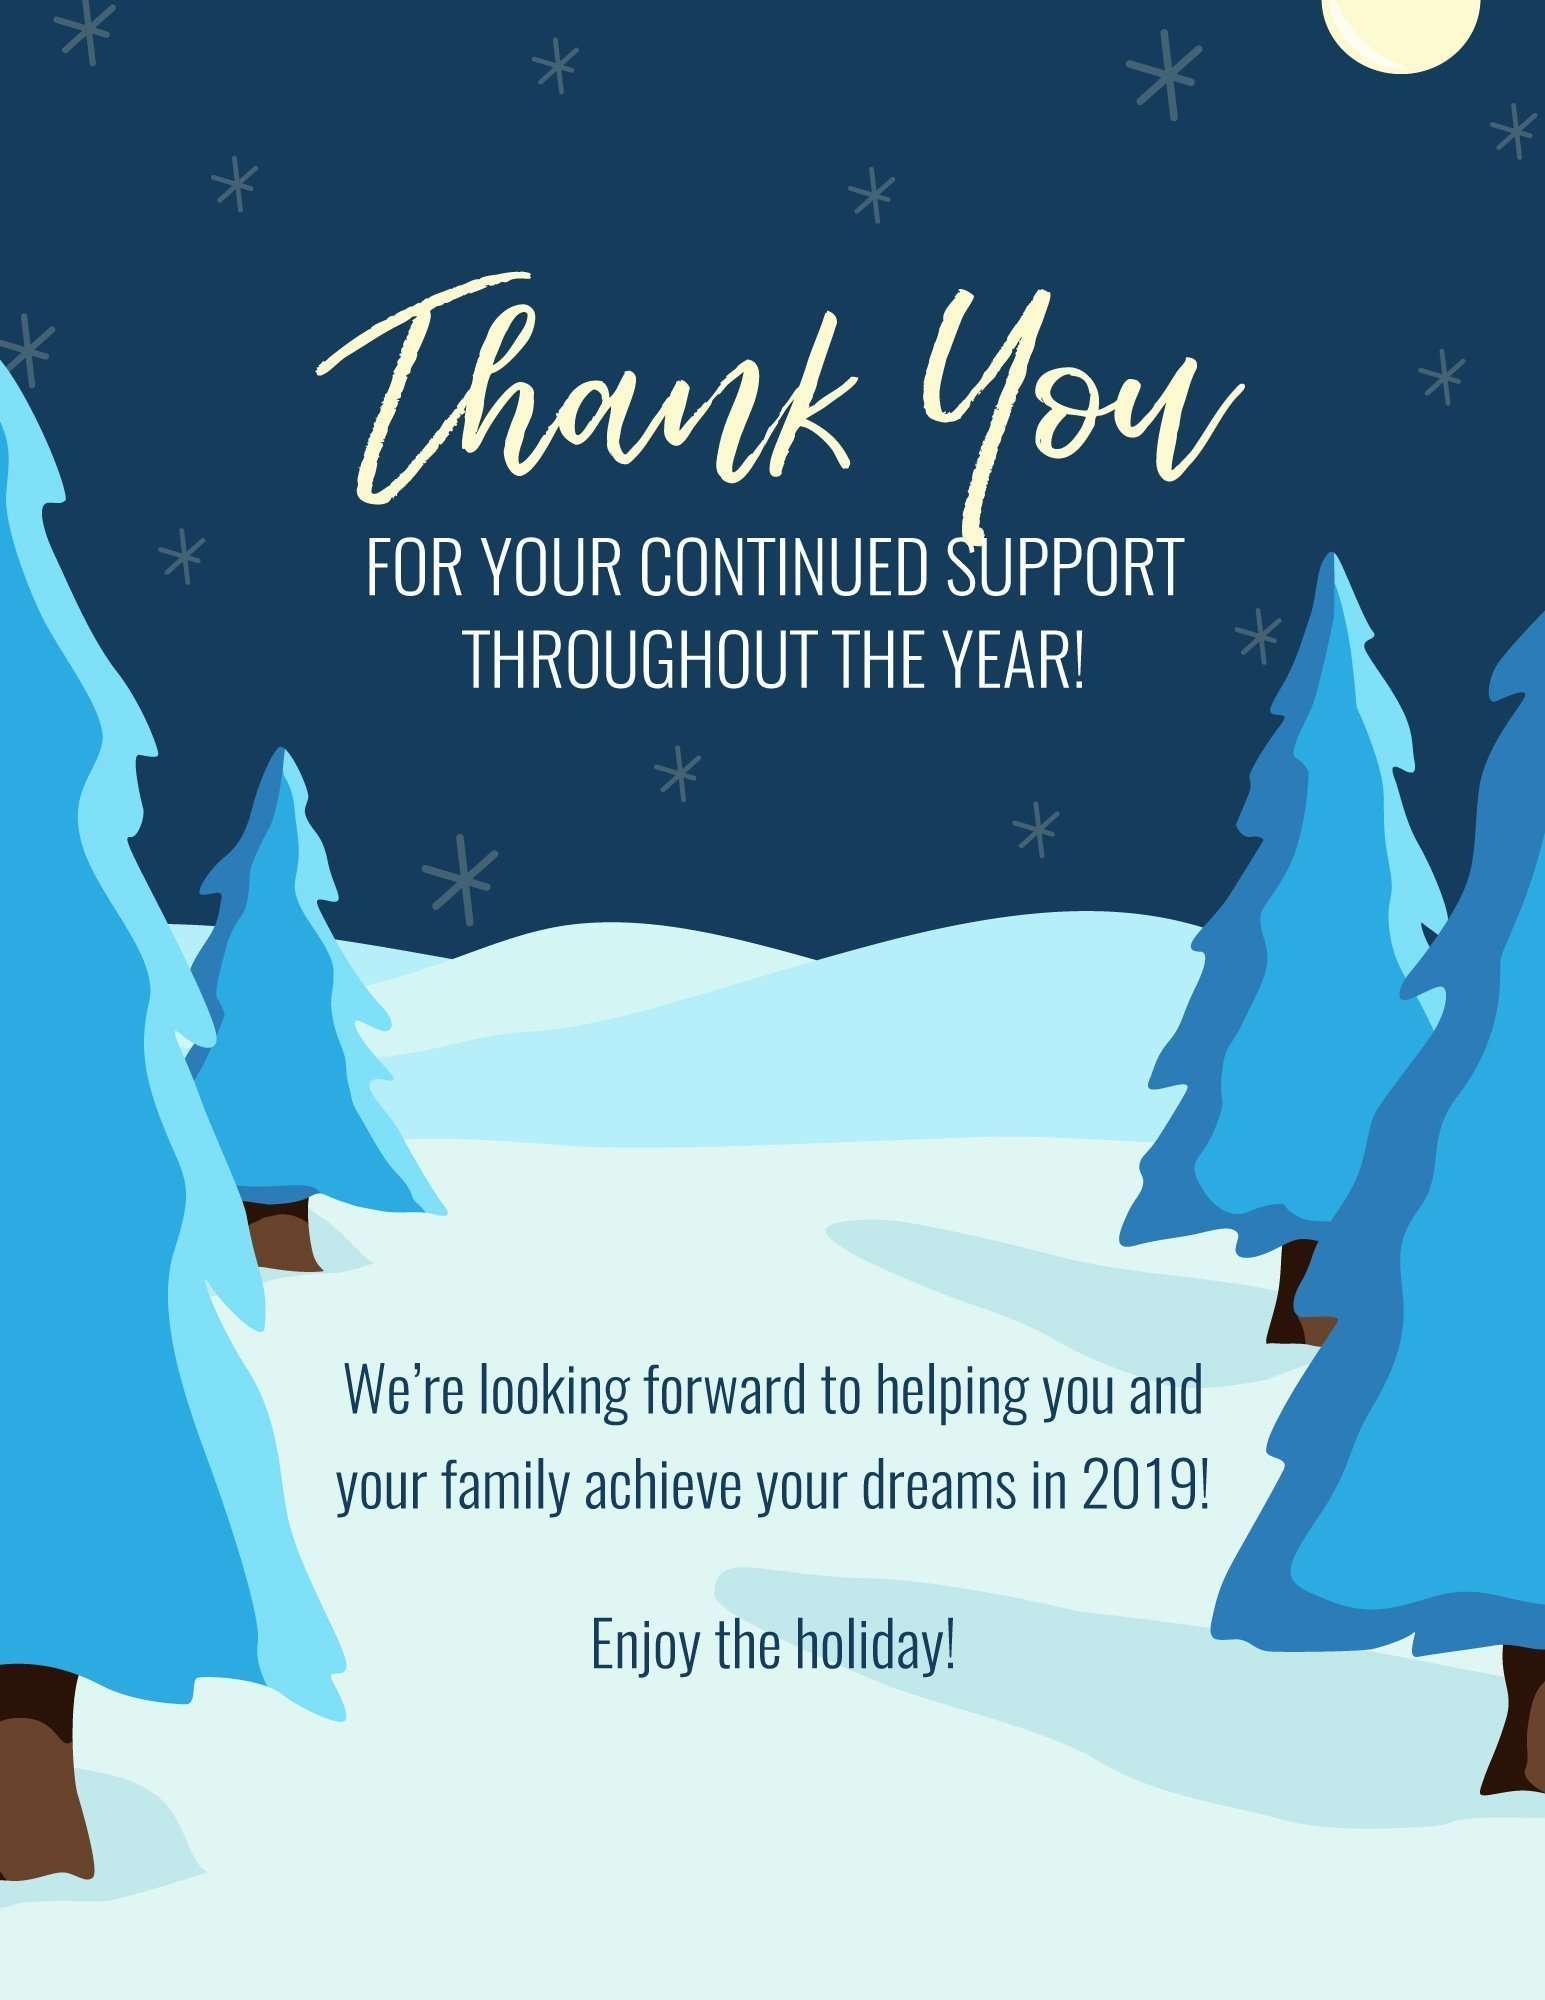 Thank You for All Your Support | Simplifying The Market